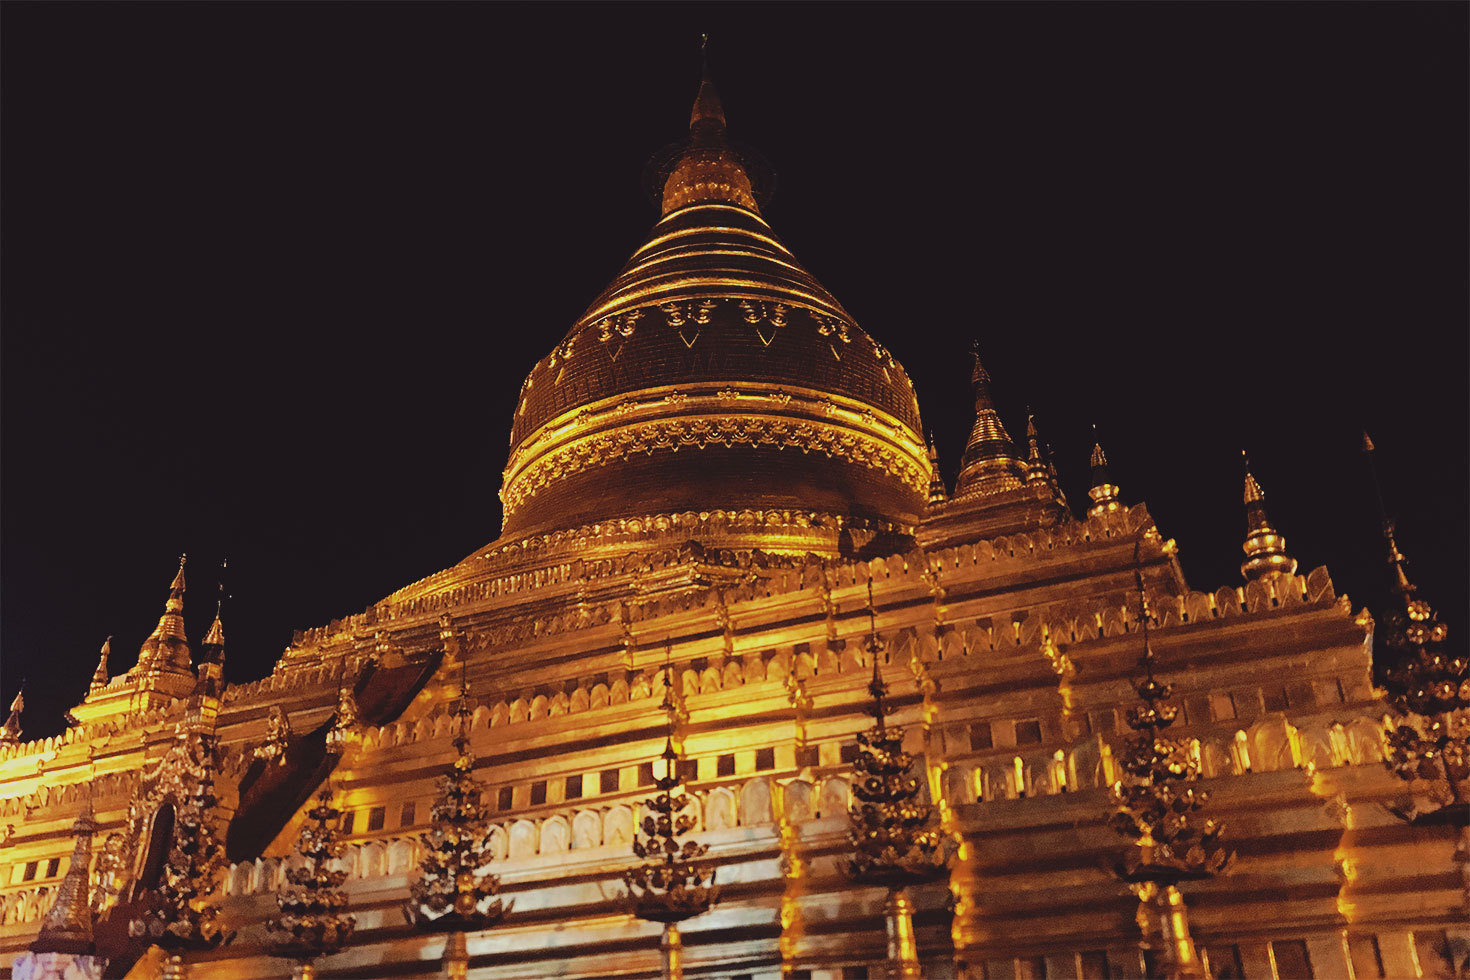 Shwezigon Pagoda by night in Bagan, Myanmar, where the upper floor is closed